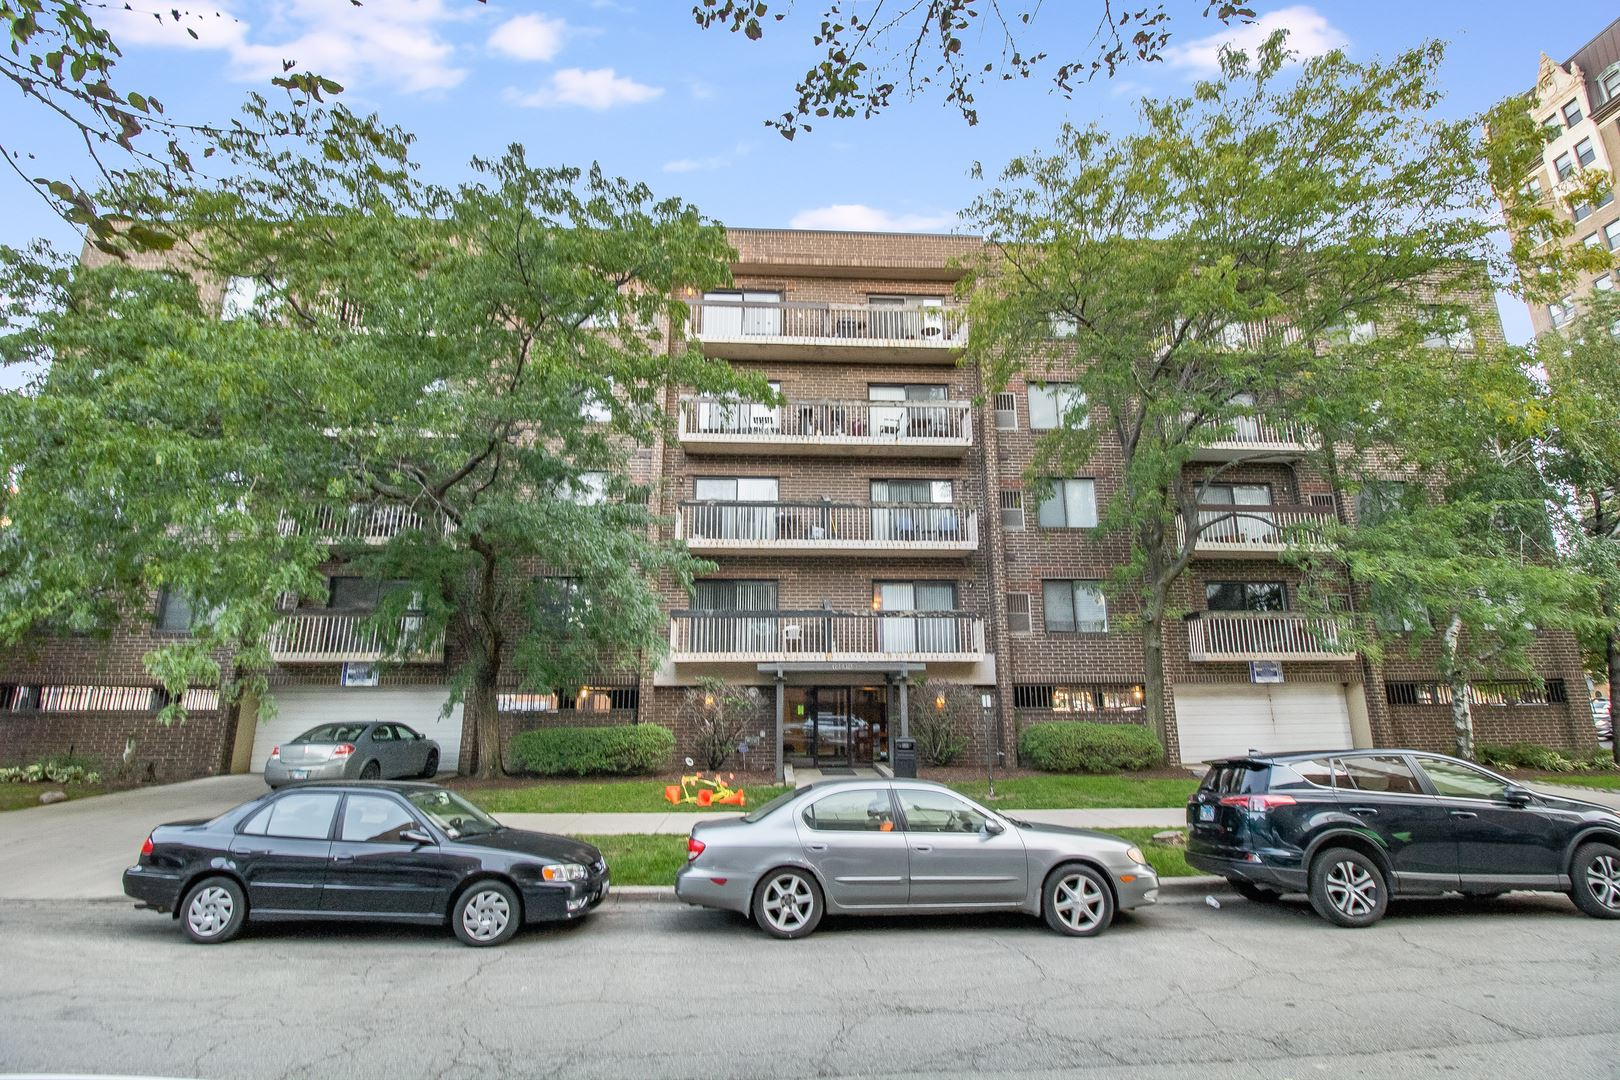 6102 N Sheridan Road #509, Chicago, IL 60660 - #: 10755925